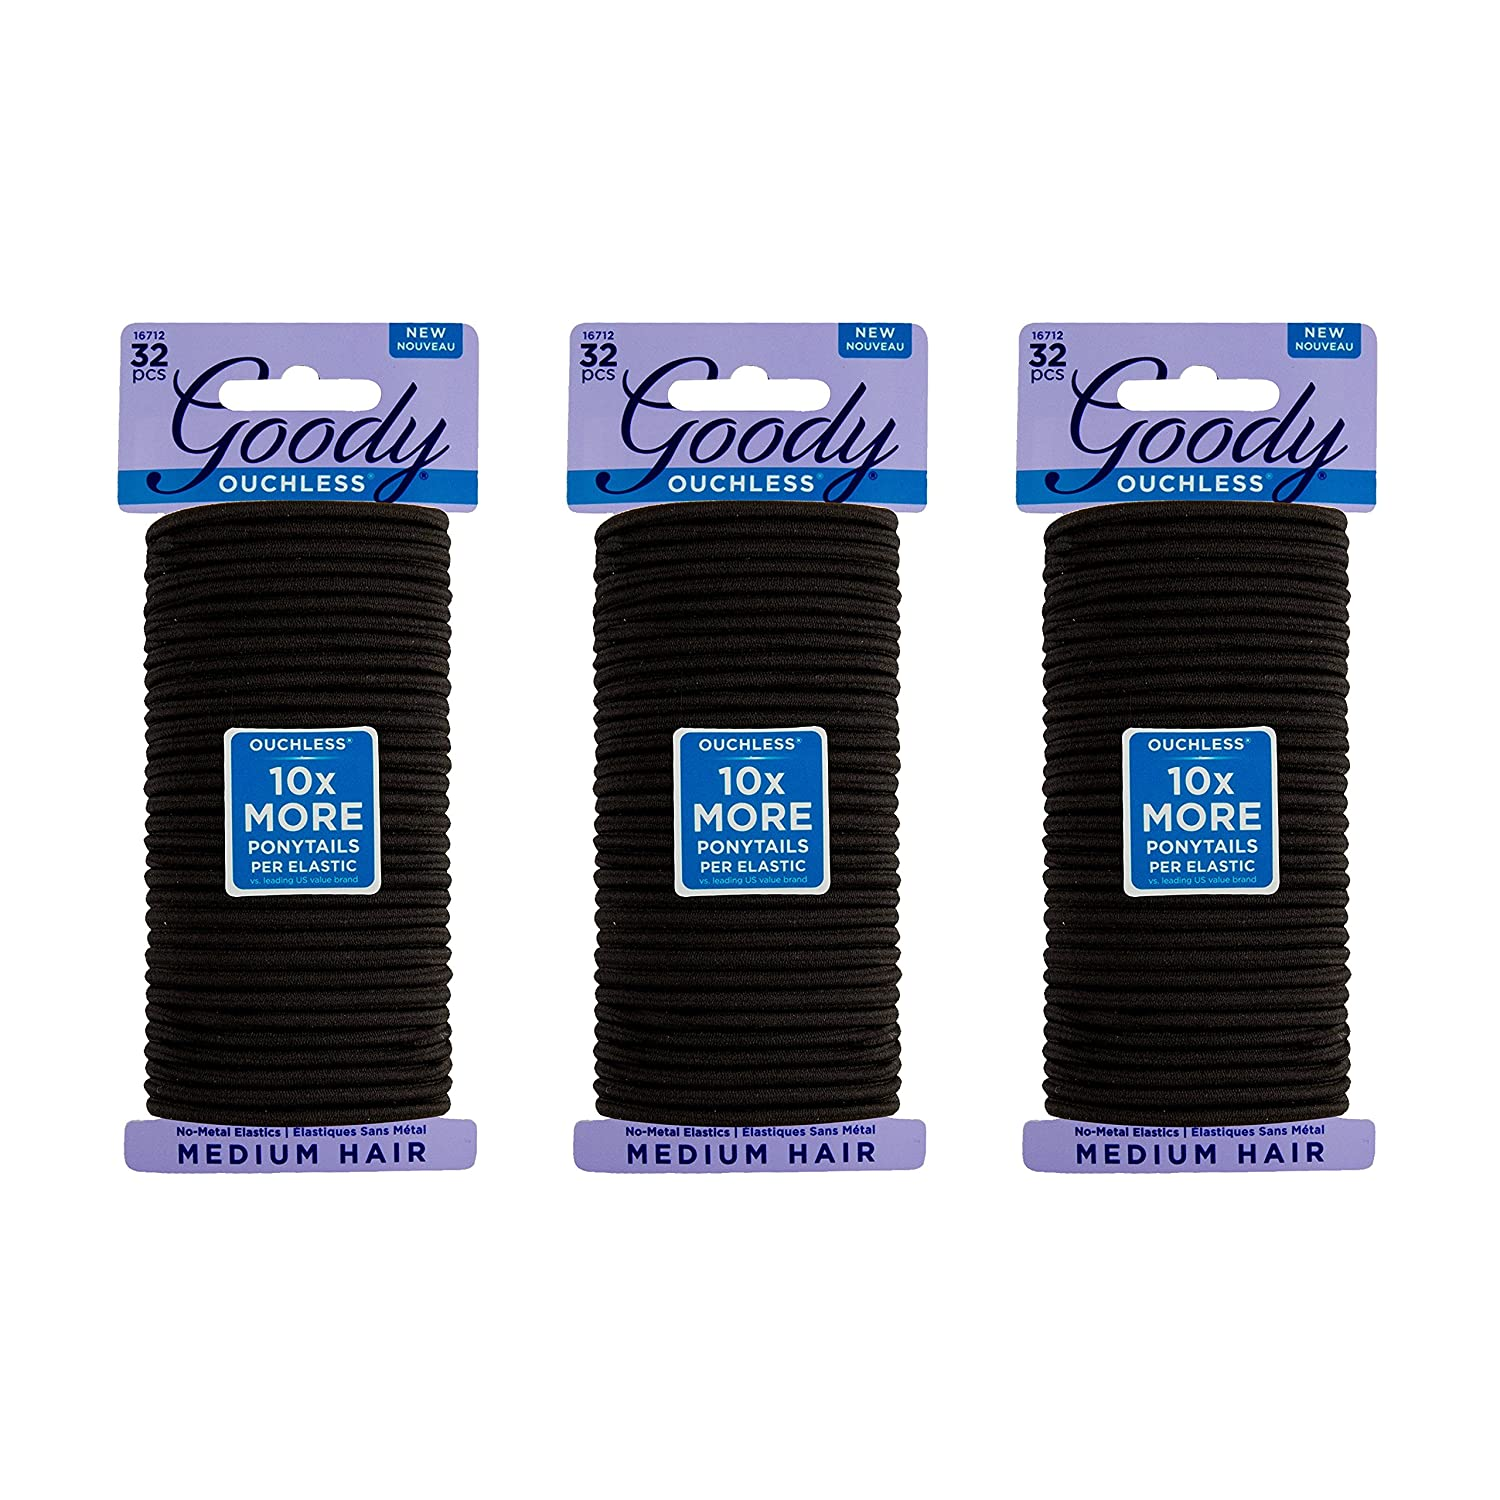 Goody Ouchless Women's Braided Elastics, Black, (96 CT Total/Pack of 3) 4MM for Medium Hair 30041457167121